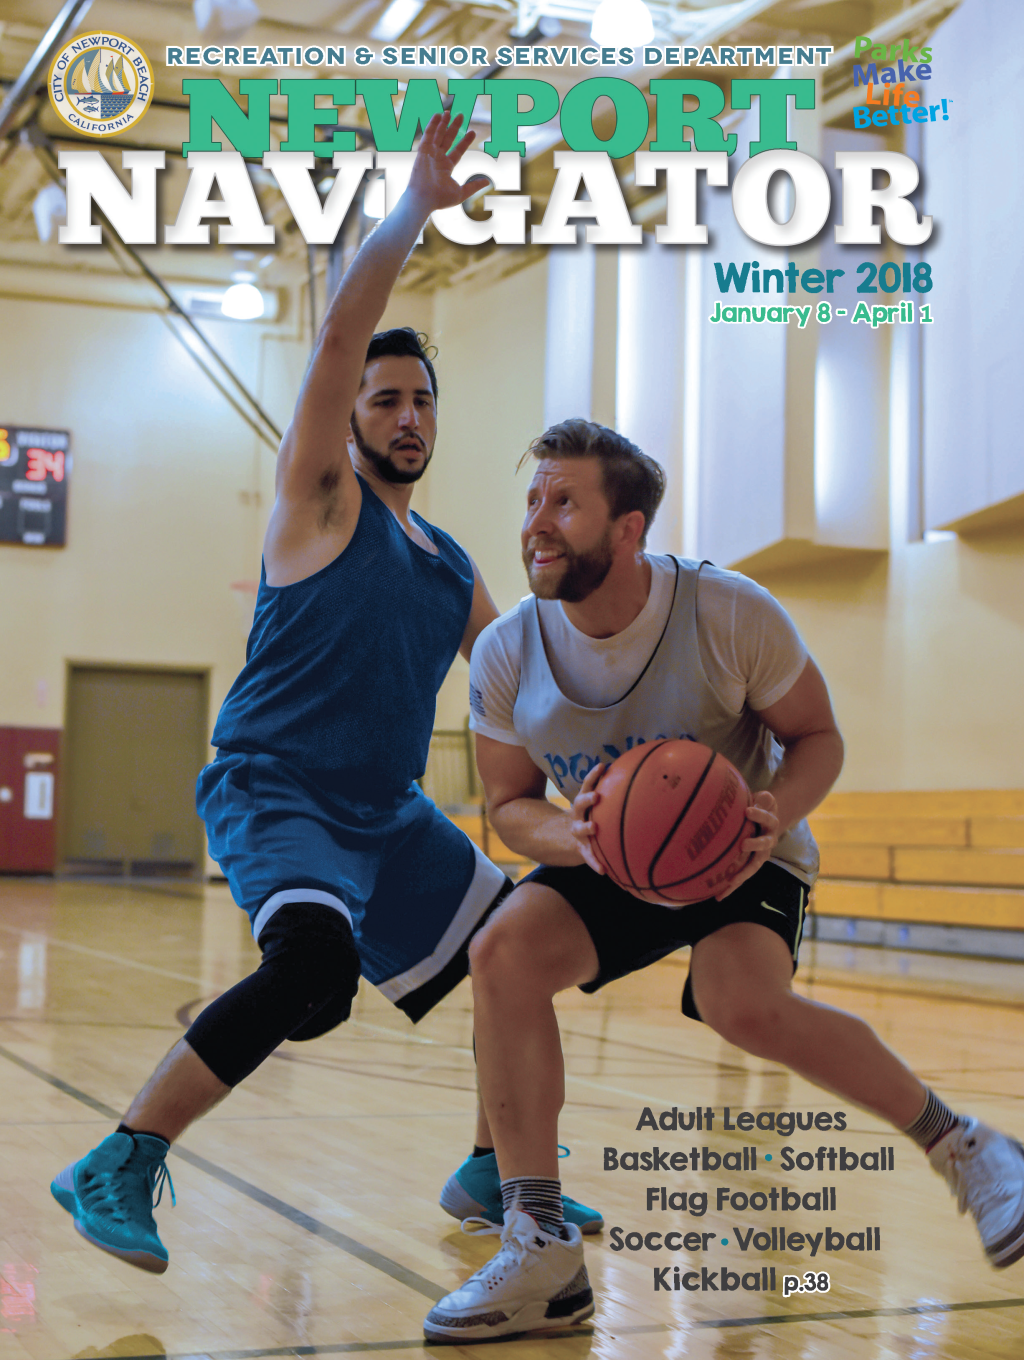 Winter 2017 Navigator Cover